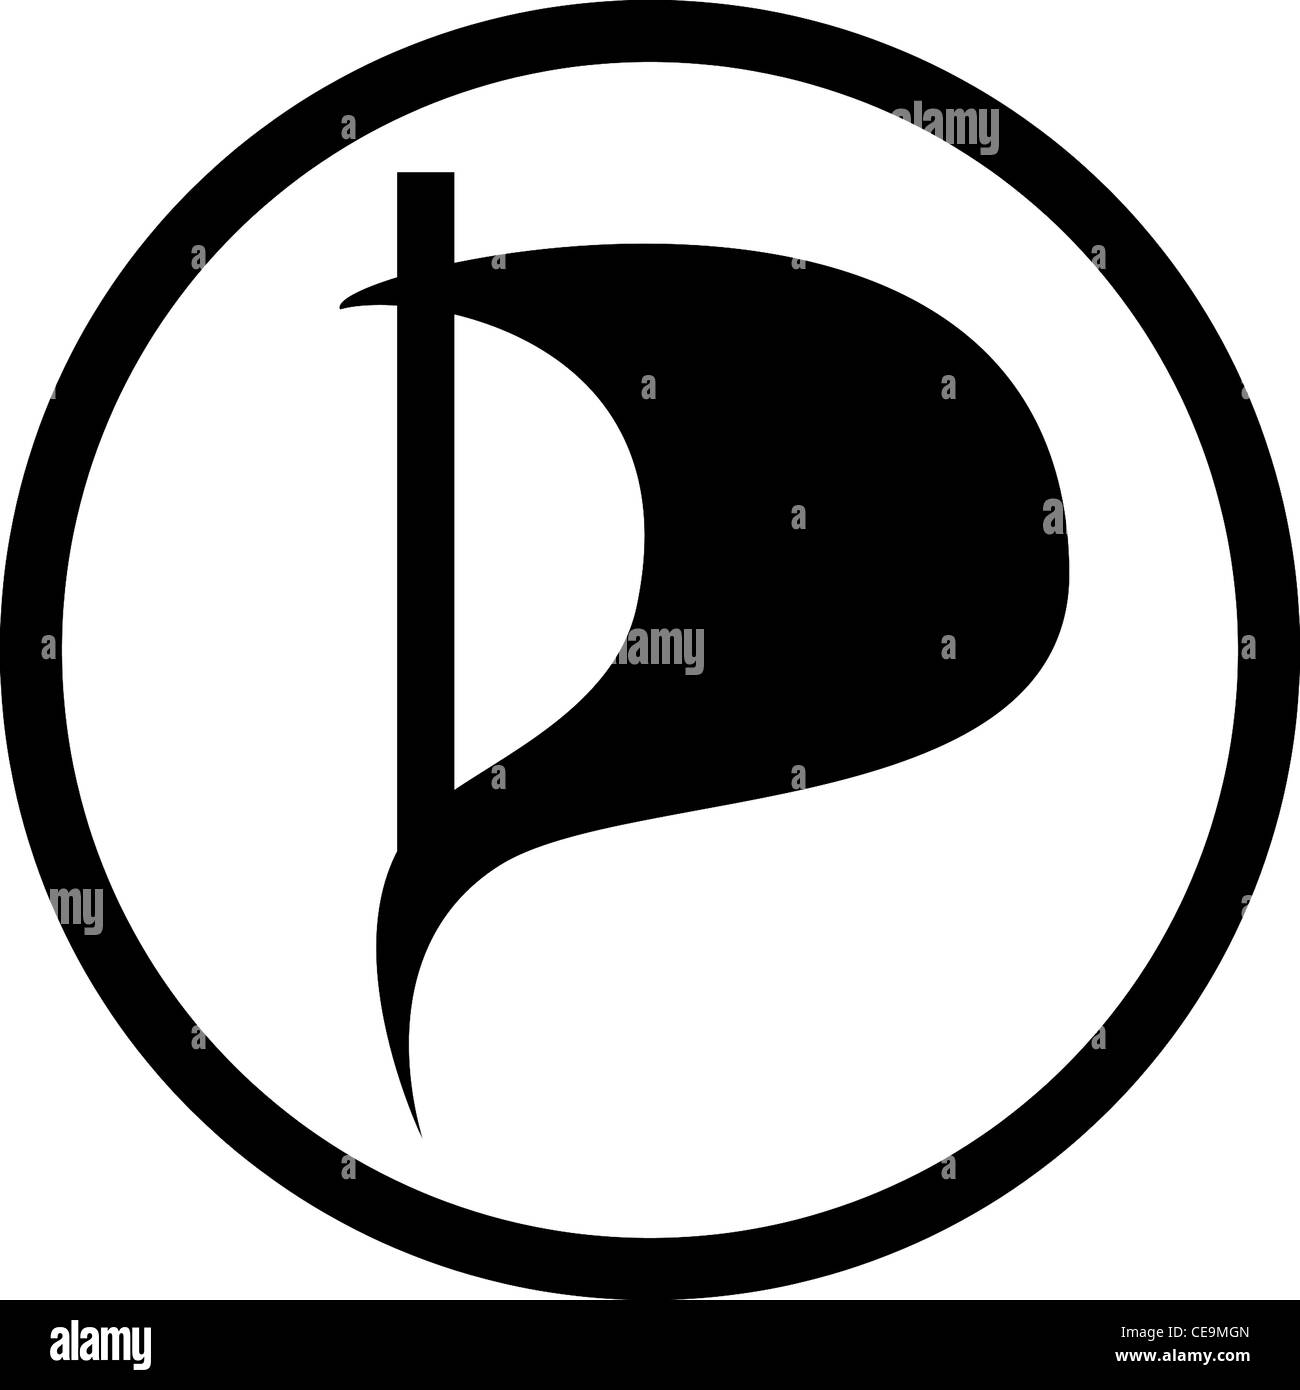 Logo of the Pirate Party of Germany PPD. - Stock Image